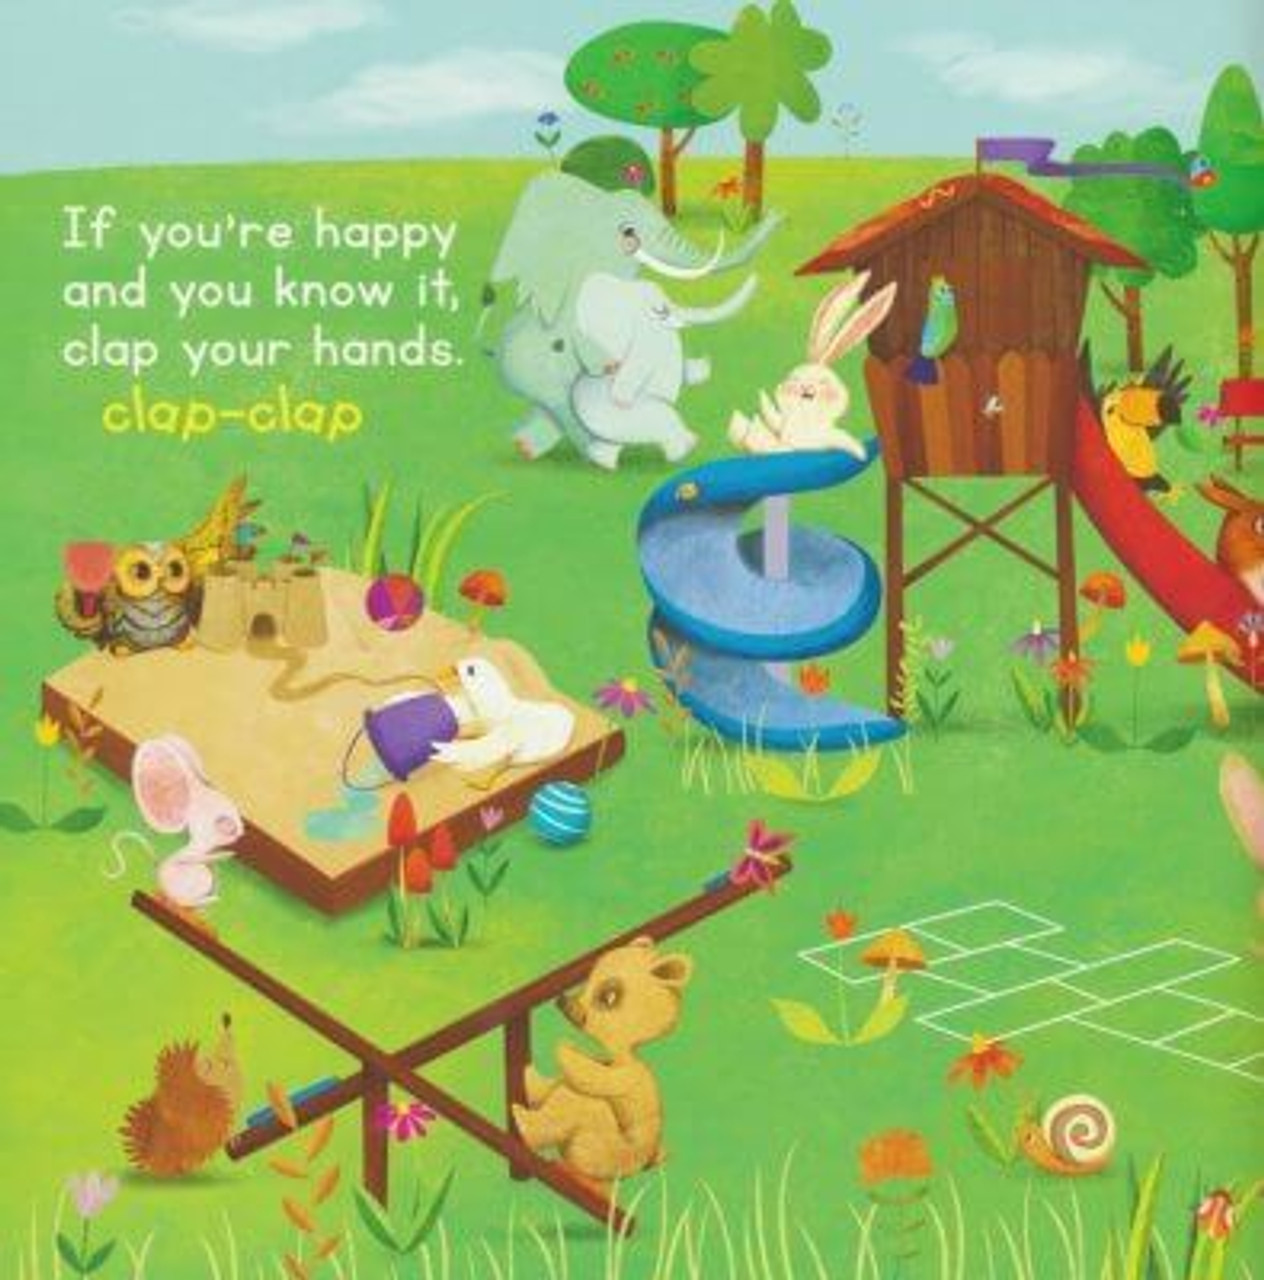 If you're happy and you know it book